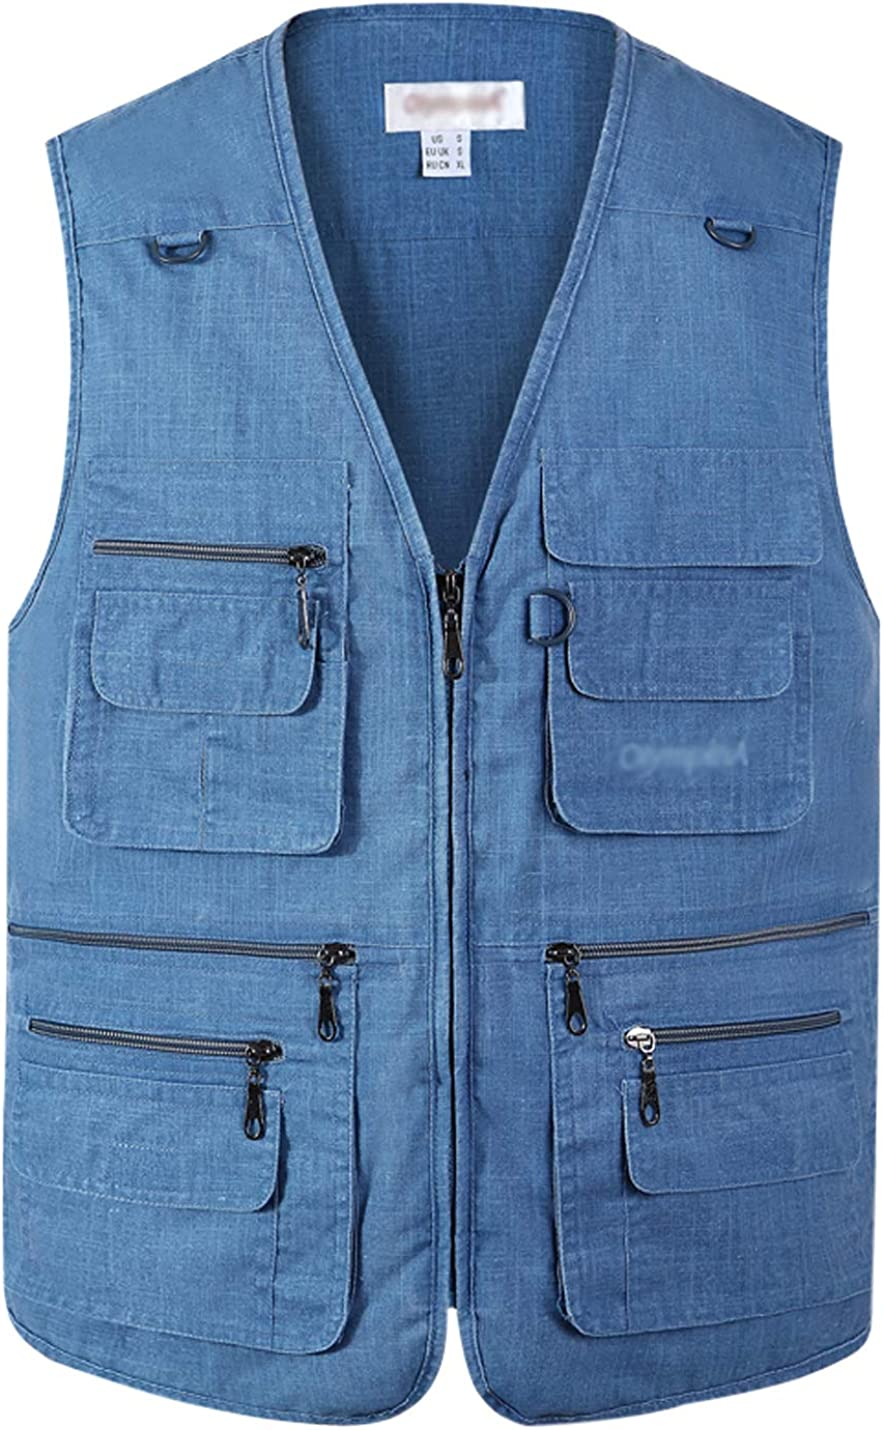 Gihuo Men's Fishing Vest Utility Shooting Safari Travel Vest with Pockets